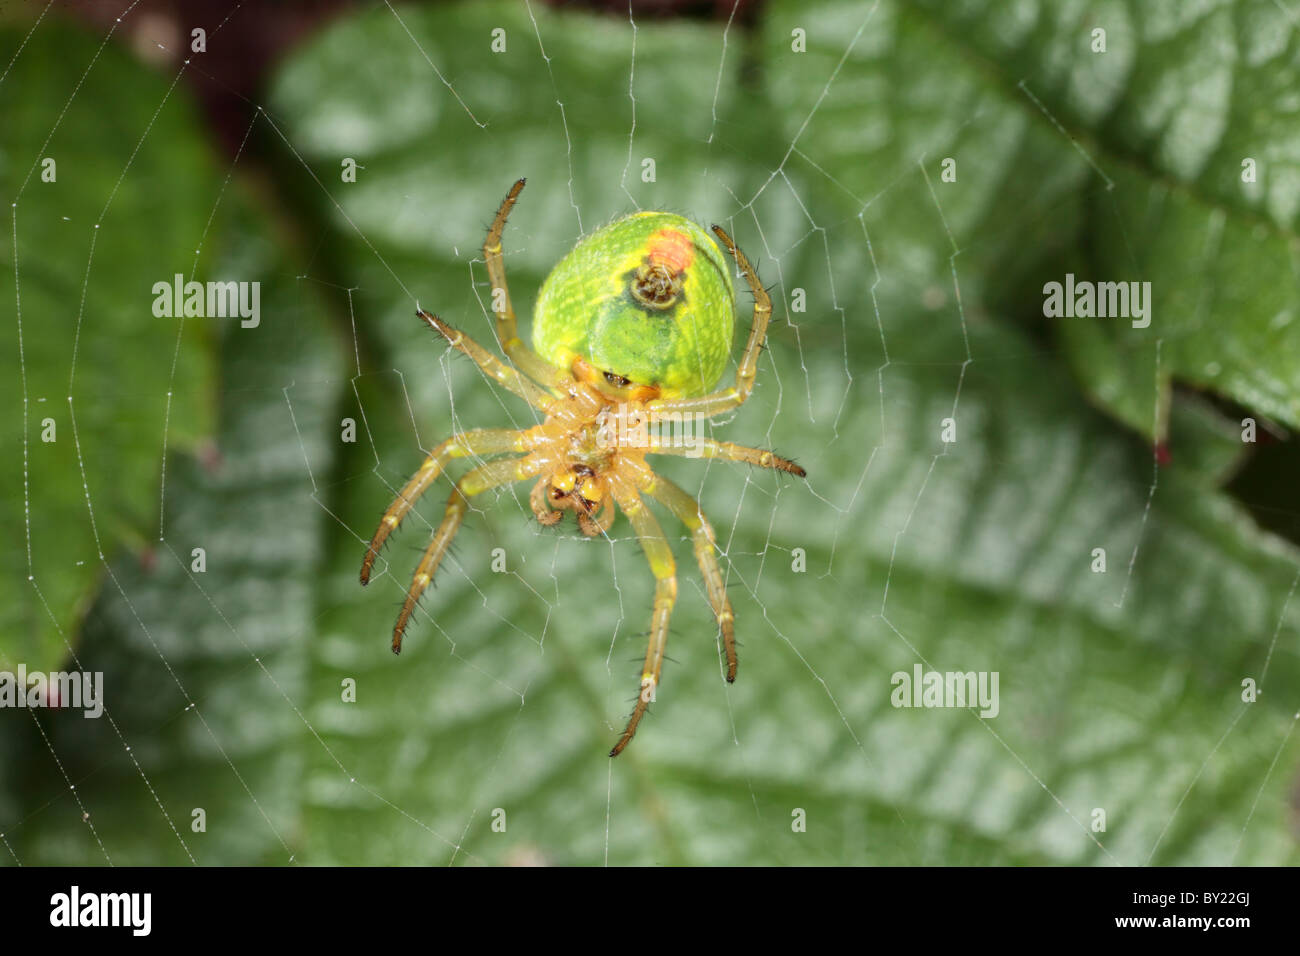 Cucumber spider (Araniella cucurbitina) in usual position hanging on the underside of her web. Powys, Wales. - Stock Image